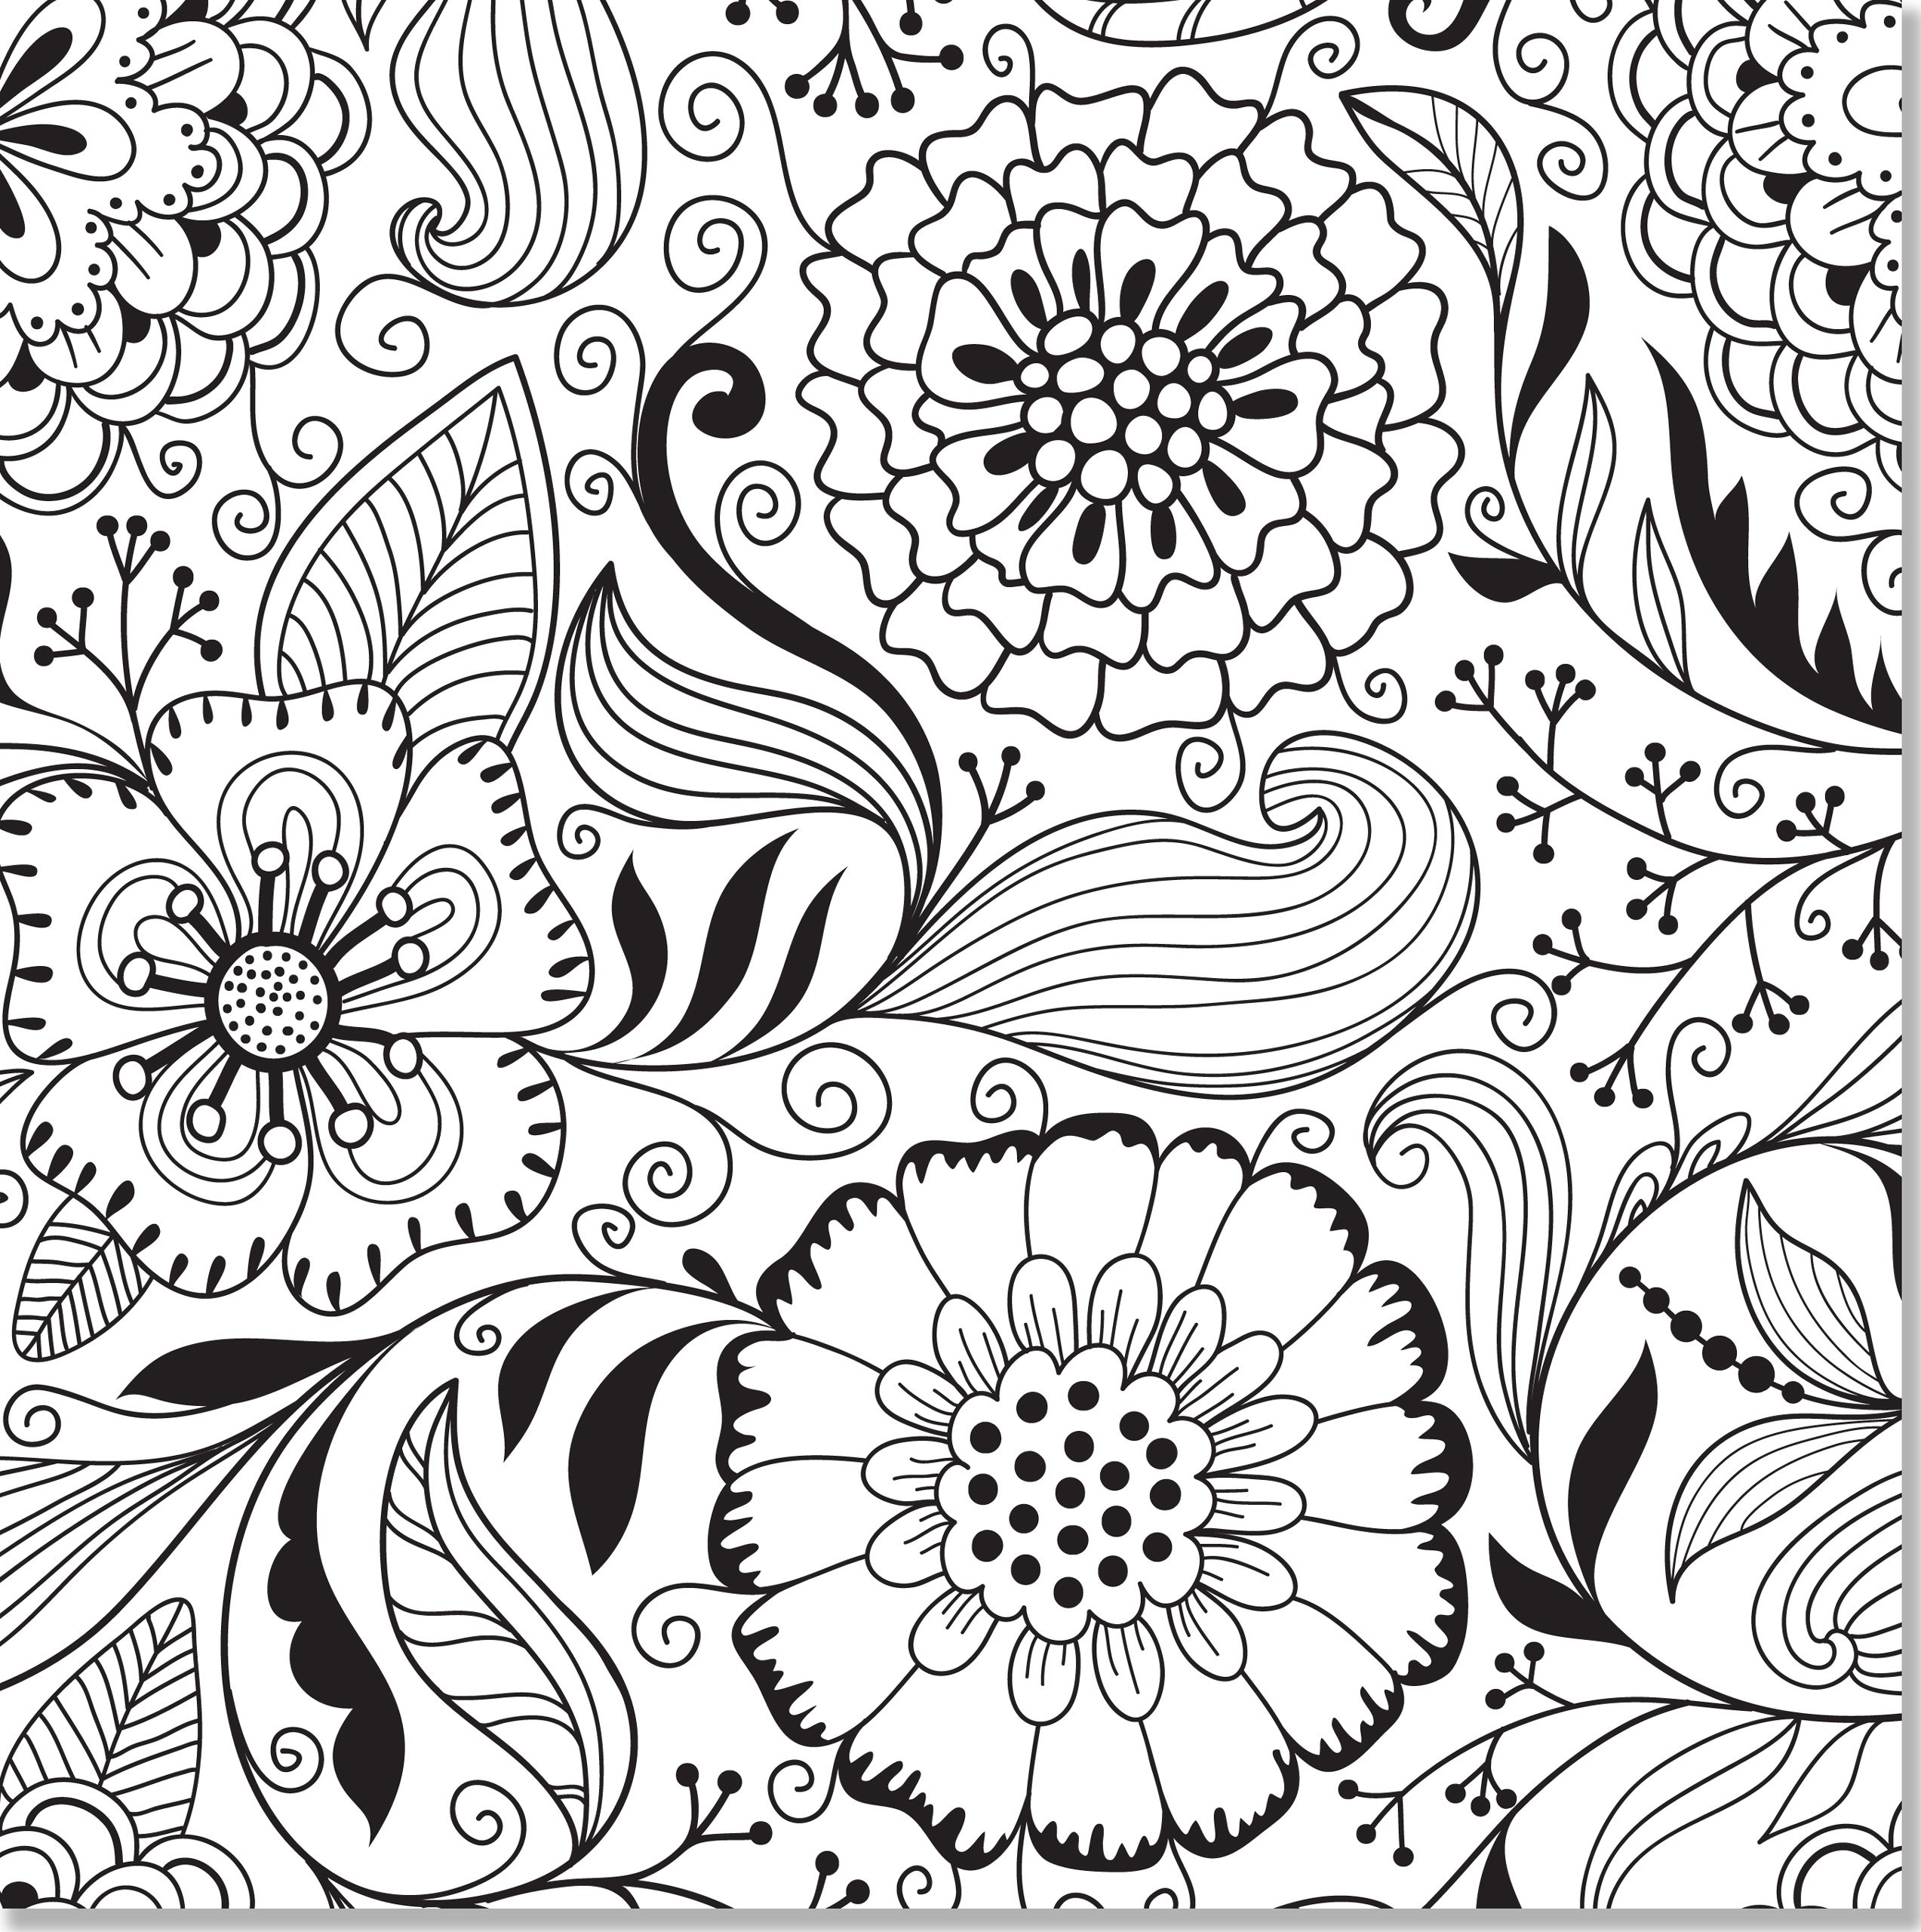 adults coloring book online : Amazon Com Floral Designs Adult Coloring Book 31 Stress Relieving Designs Studio 9781441317452 Peter Pauper Press Books